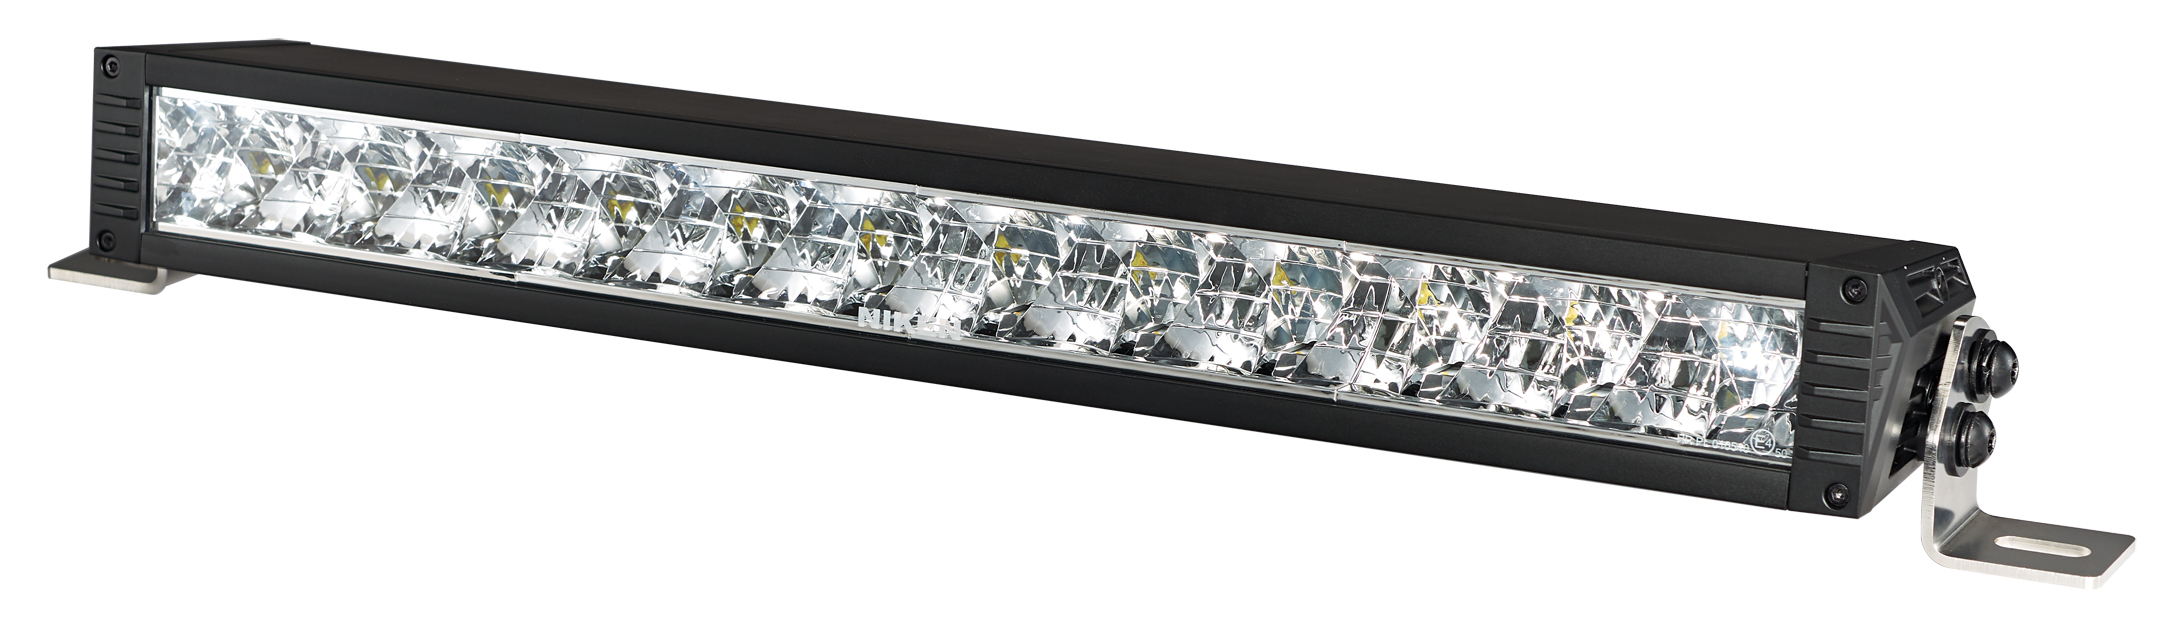 Truck / Trailer / Heavy Duty LED Light Bar for Lighting Series made by NIKEN Vehicle Lighting Co., LTD. 首通股份有限公司 - MatchSupplier.com